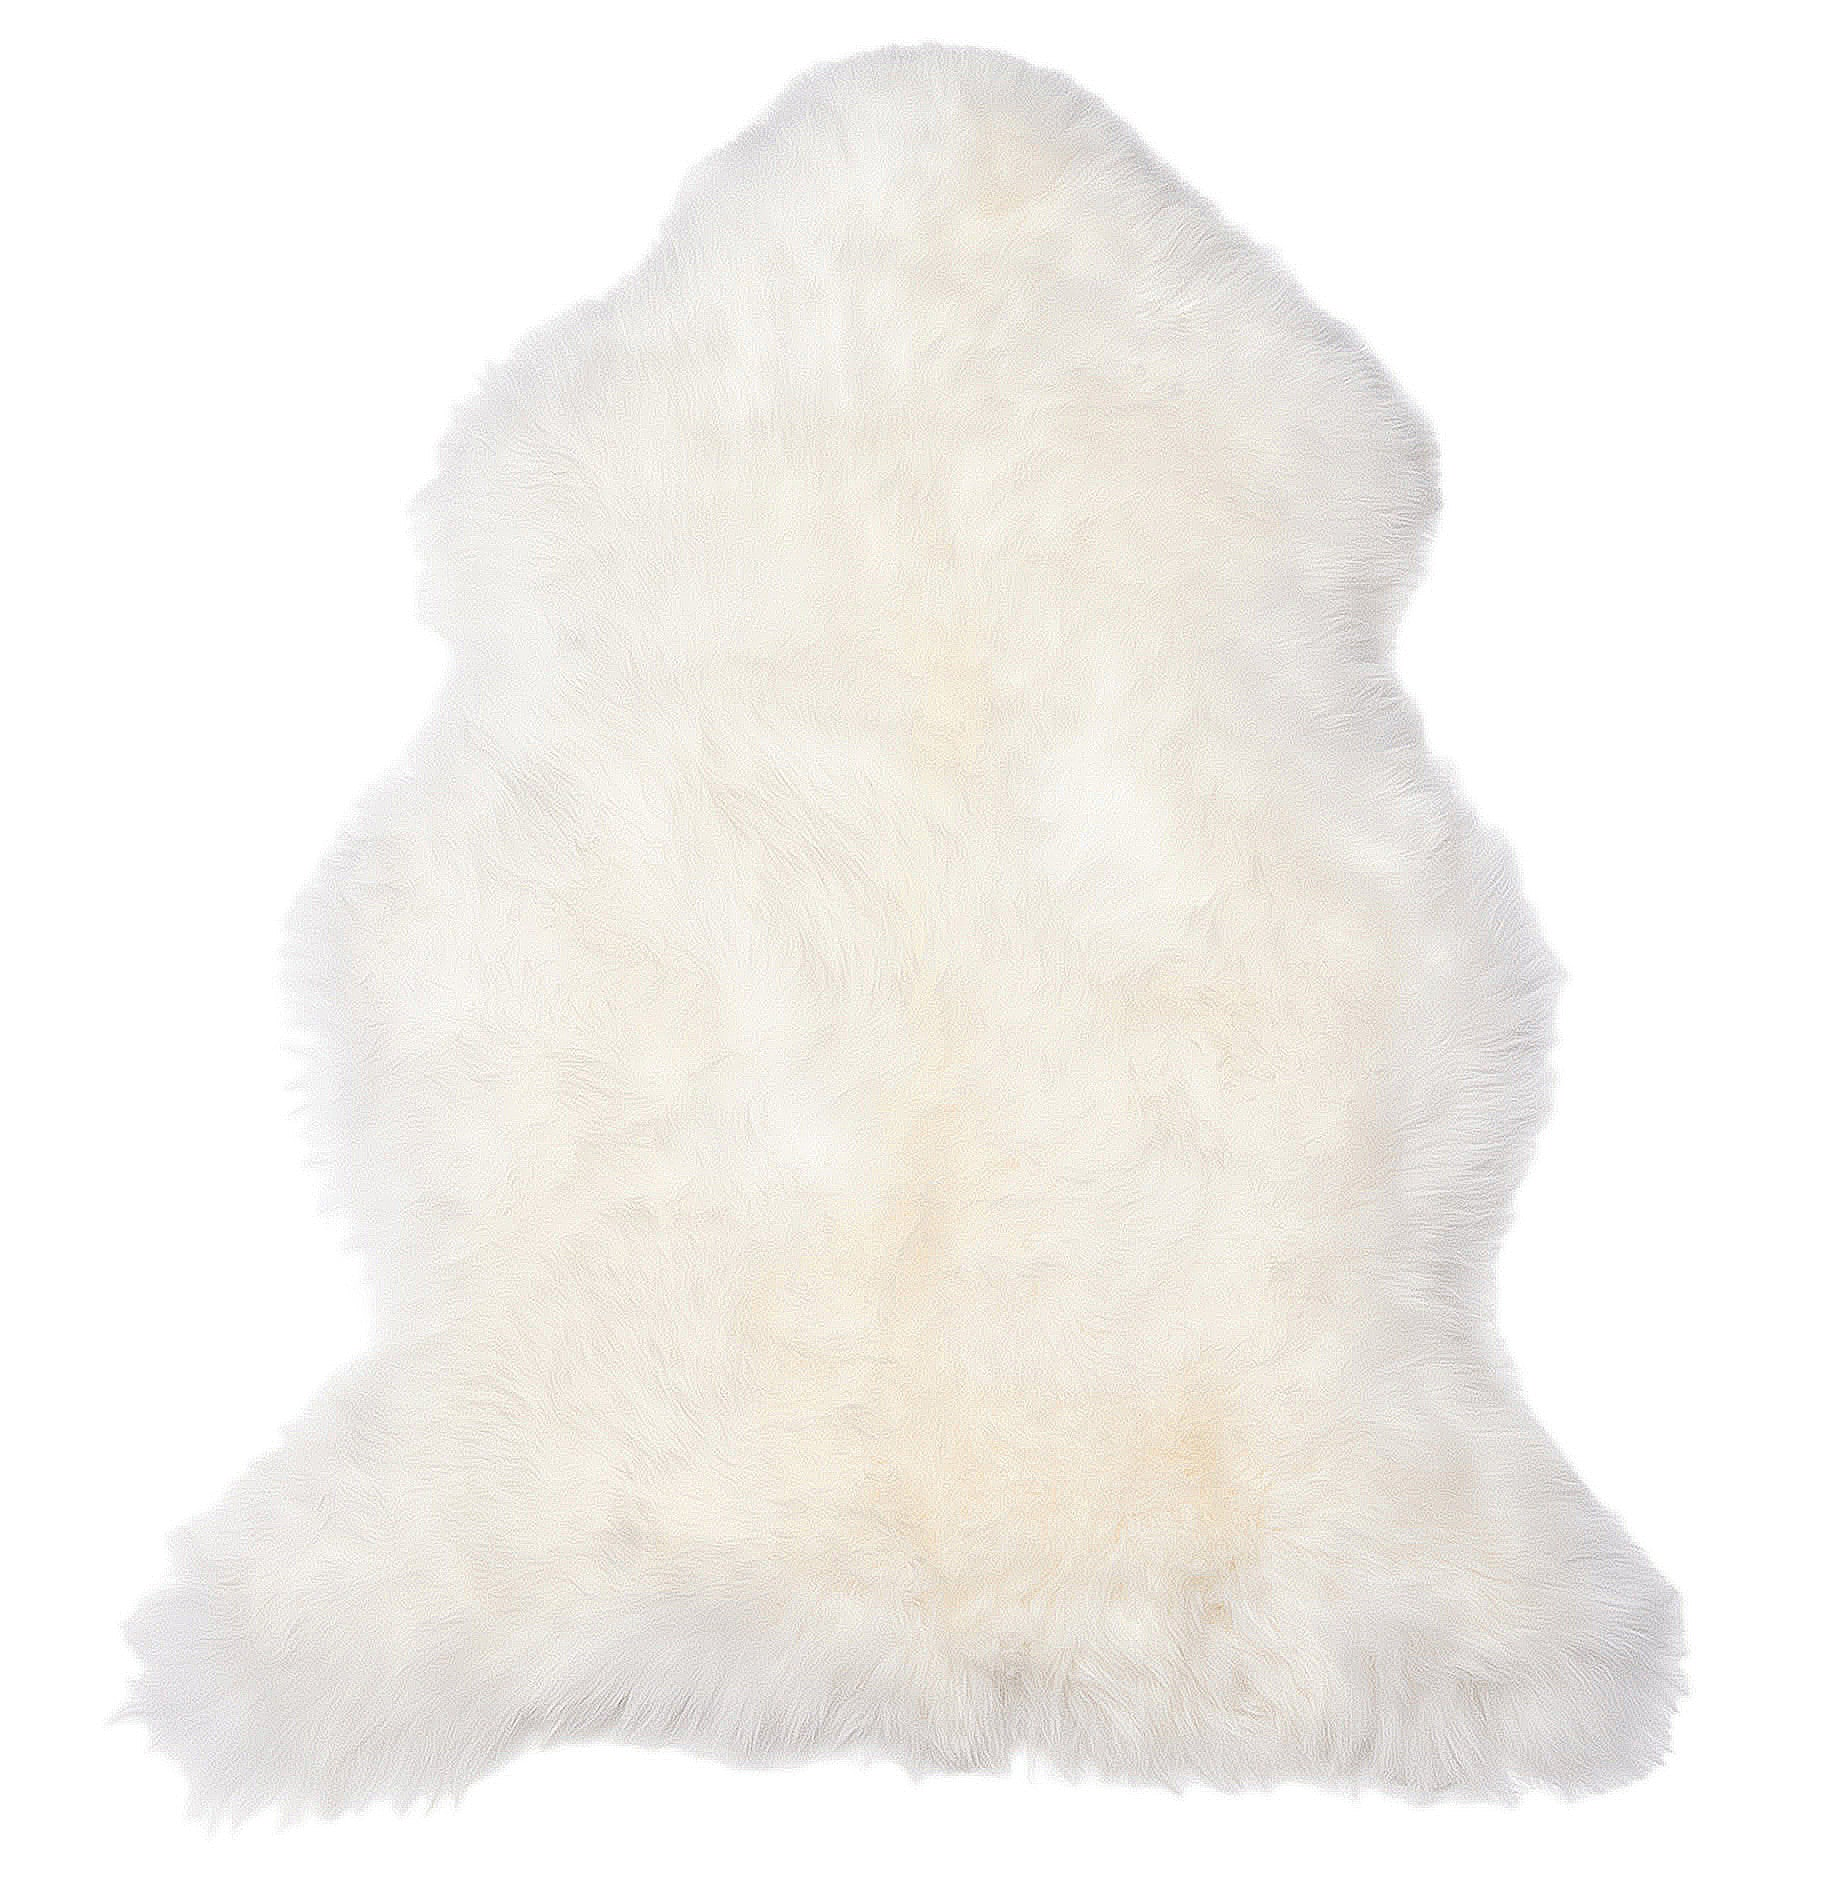 sheepskin sexto luxury grey sheep interiors xl rug vole skin cowshed products